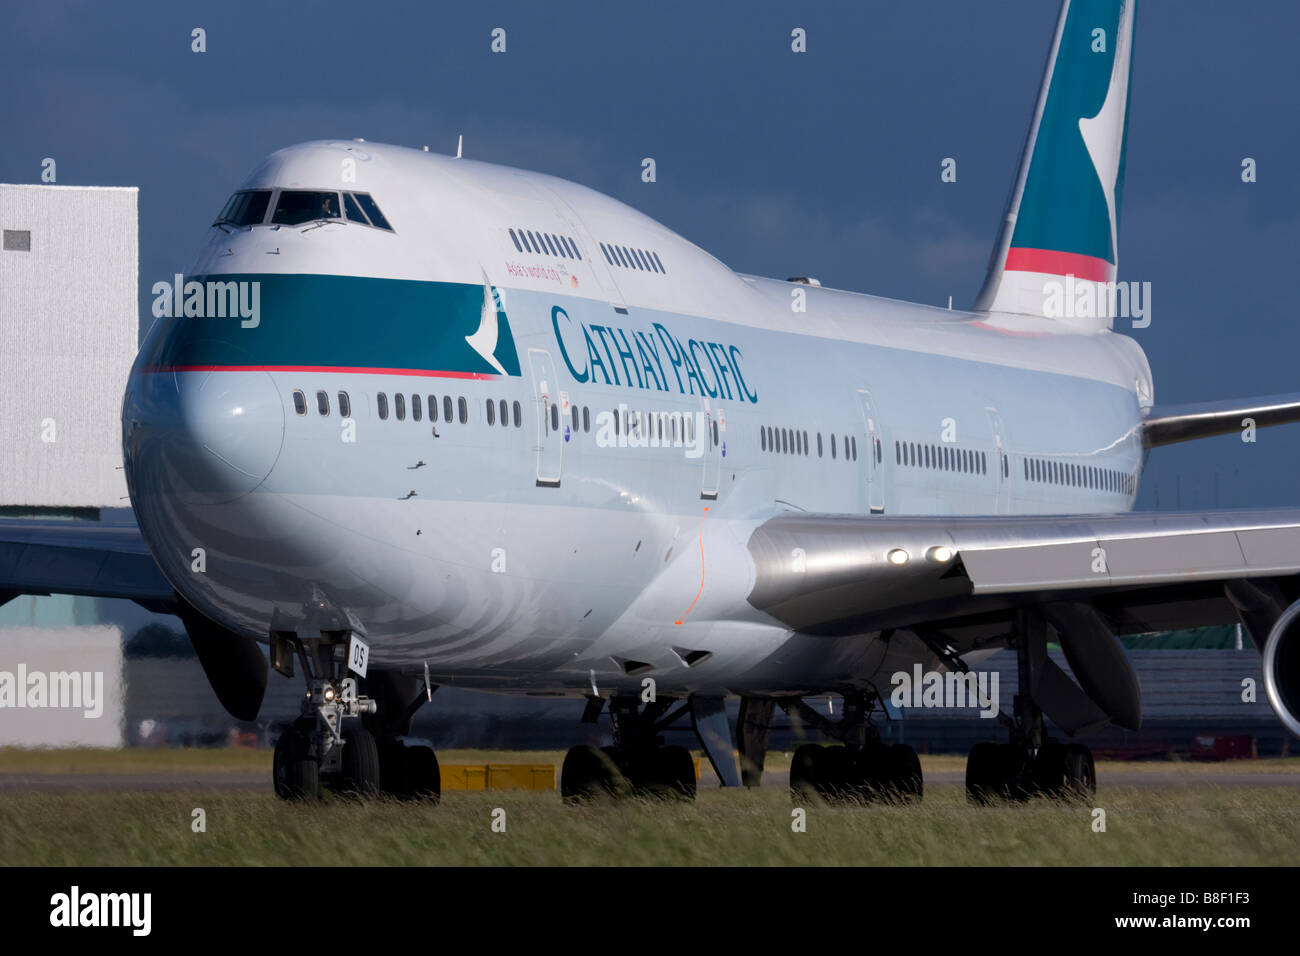 Cathay Pacific Airways Boeing 747-467 taxiing for departure at London Heathrow airport. Stock Photo